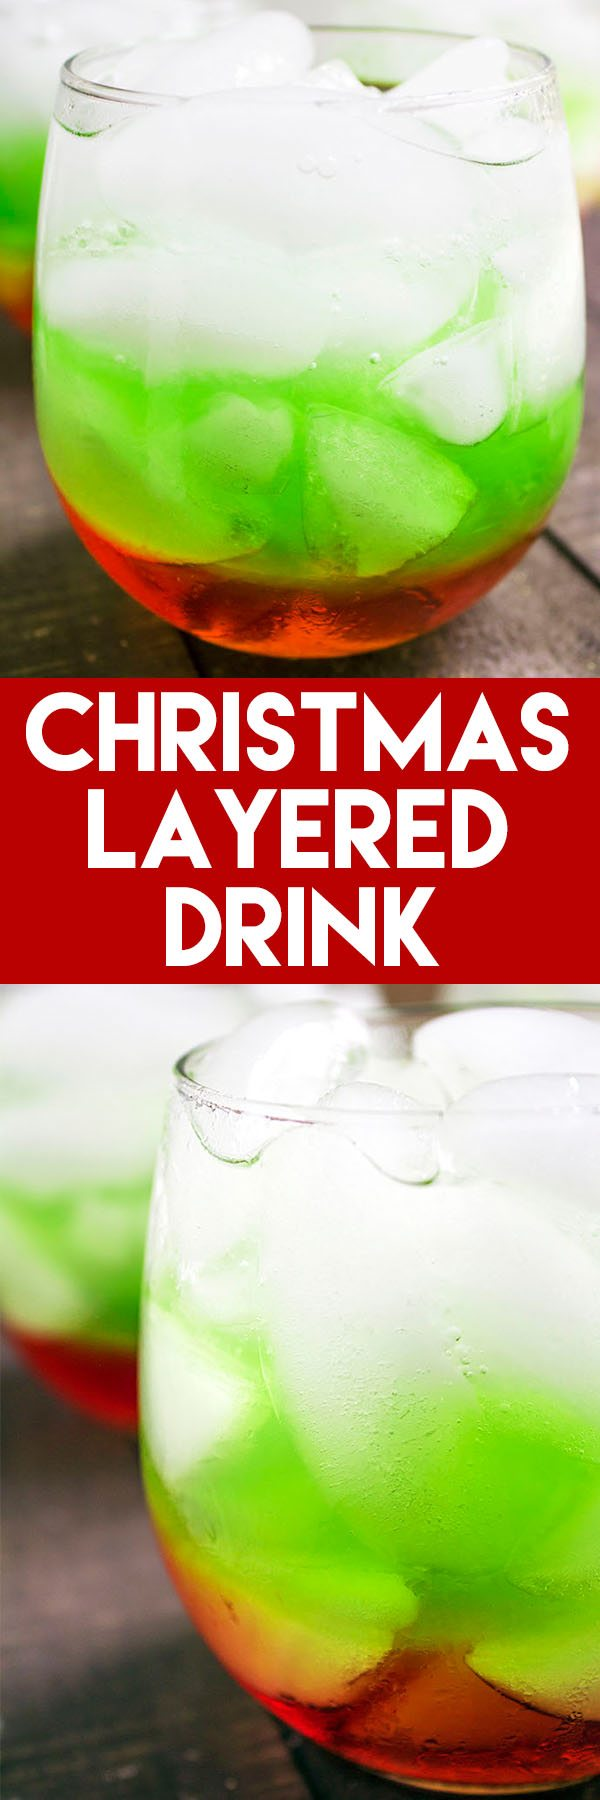 This Christmas Layered Drink is such a festive, holiday drink! #holiday #christmas #drink #recipe